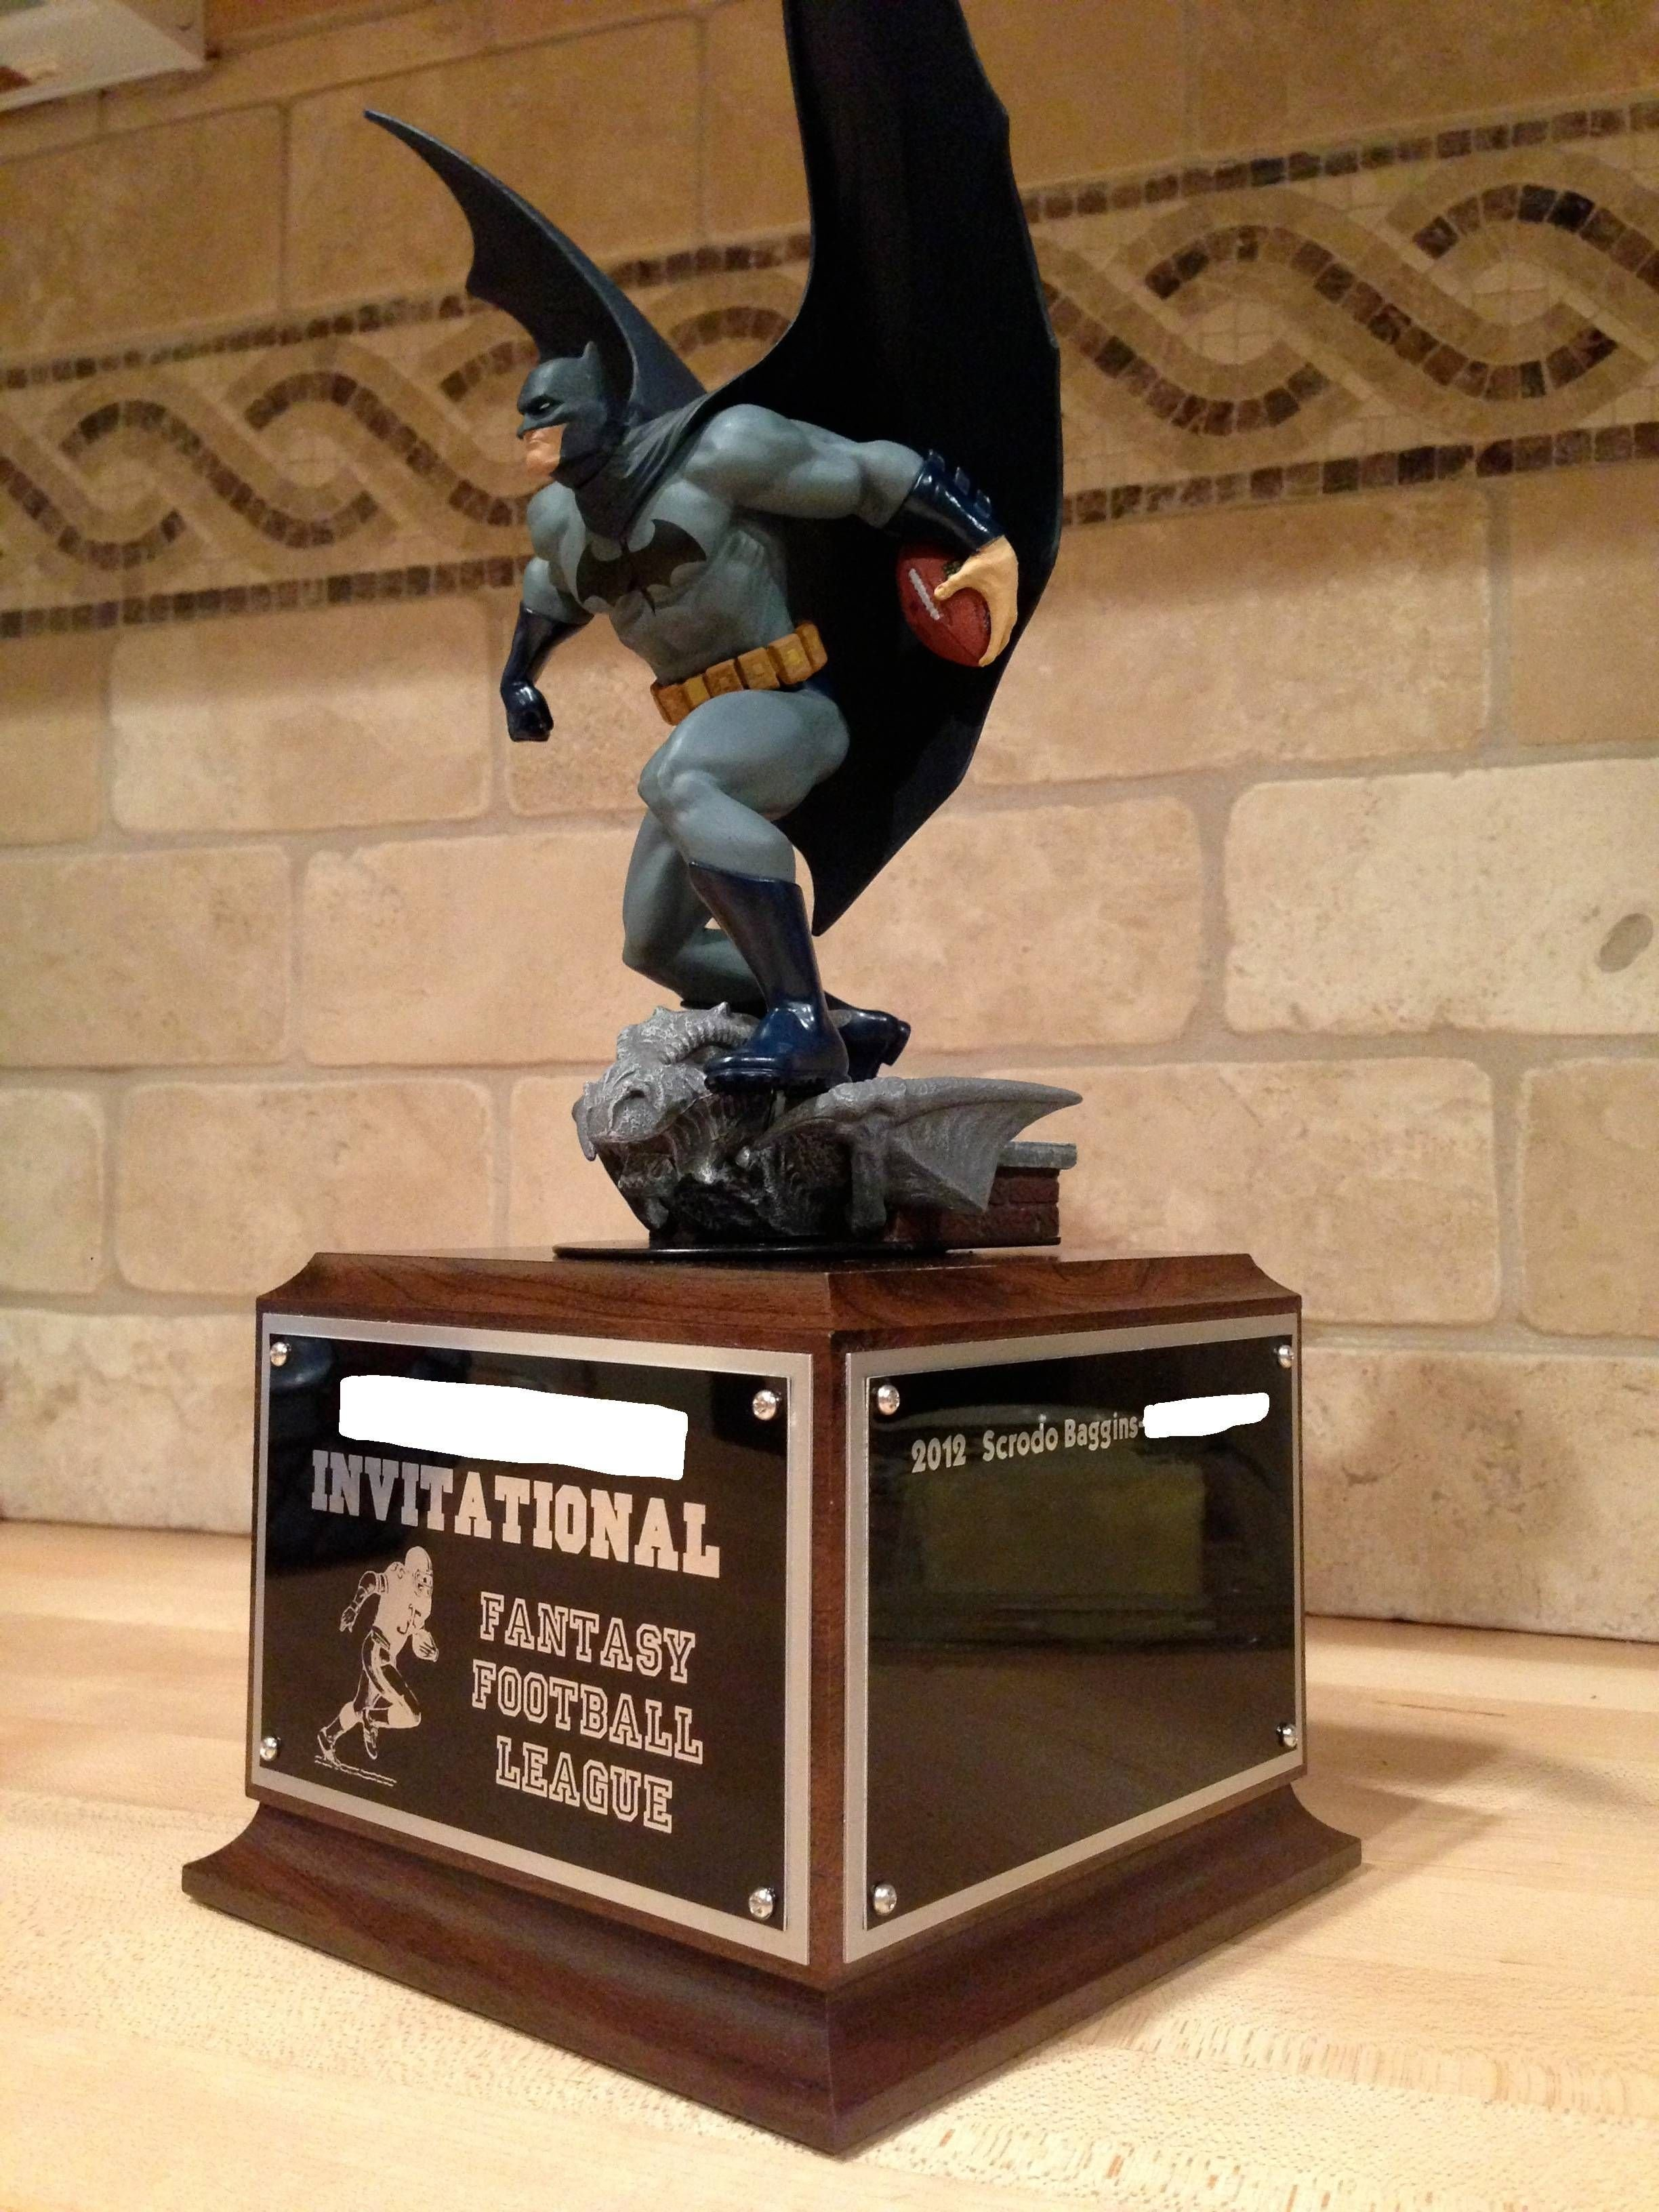 10 Most Popular Last Place Fantasy Football Ideas best fantasy football trophy i can find i want to make a version 2020